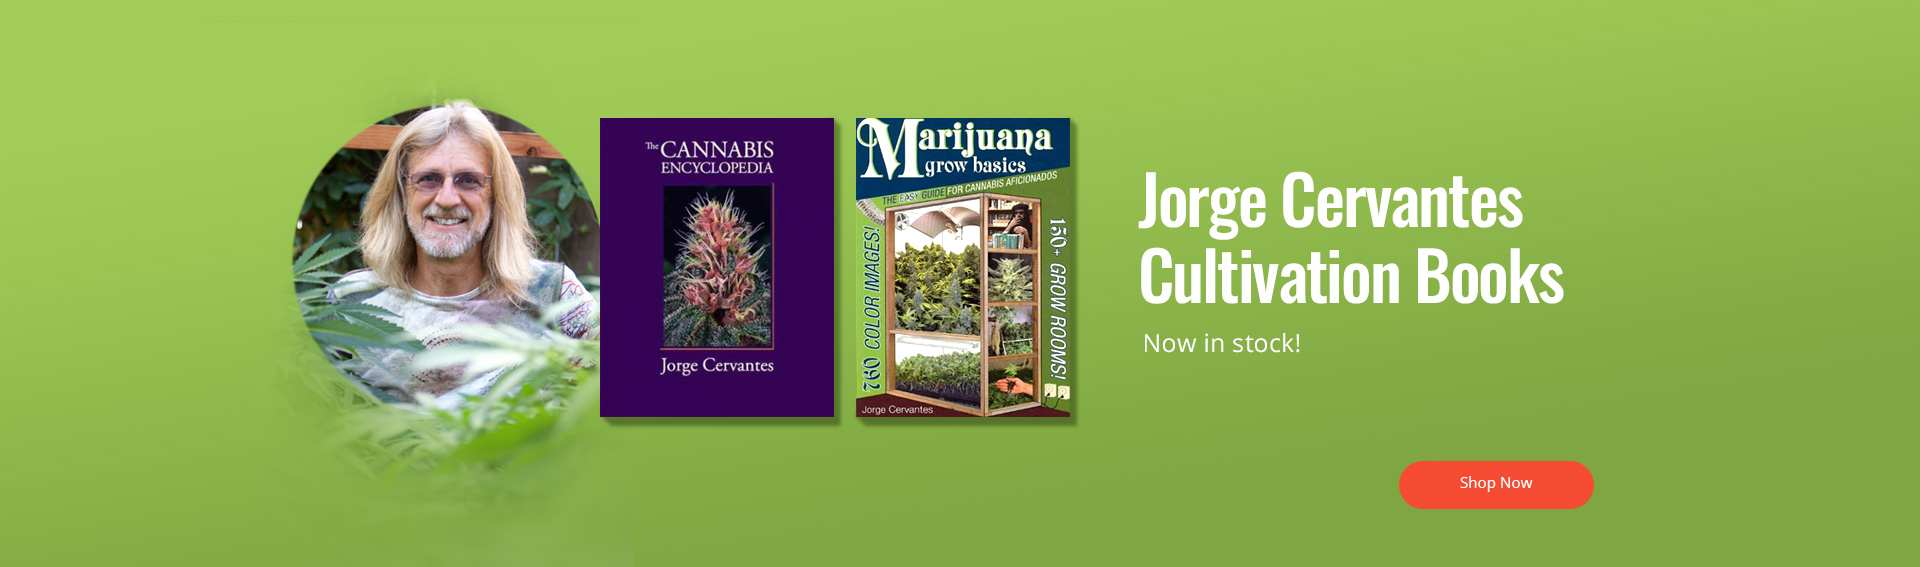 Homepage - Jorge Cervantes Cultivation Books